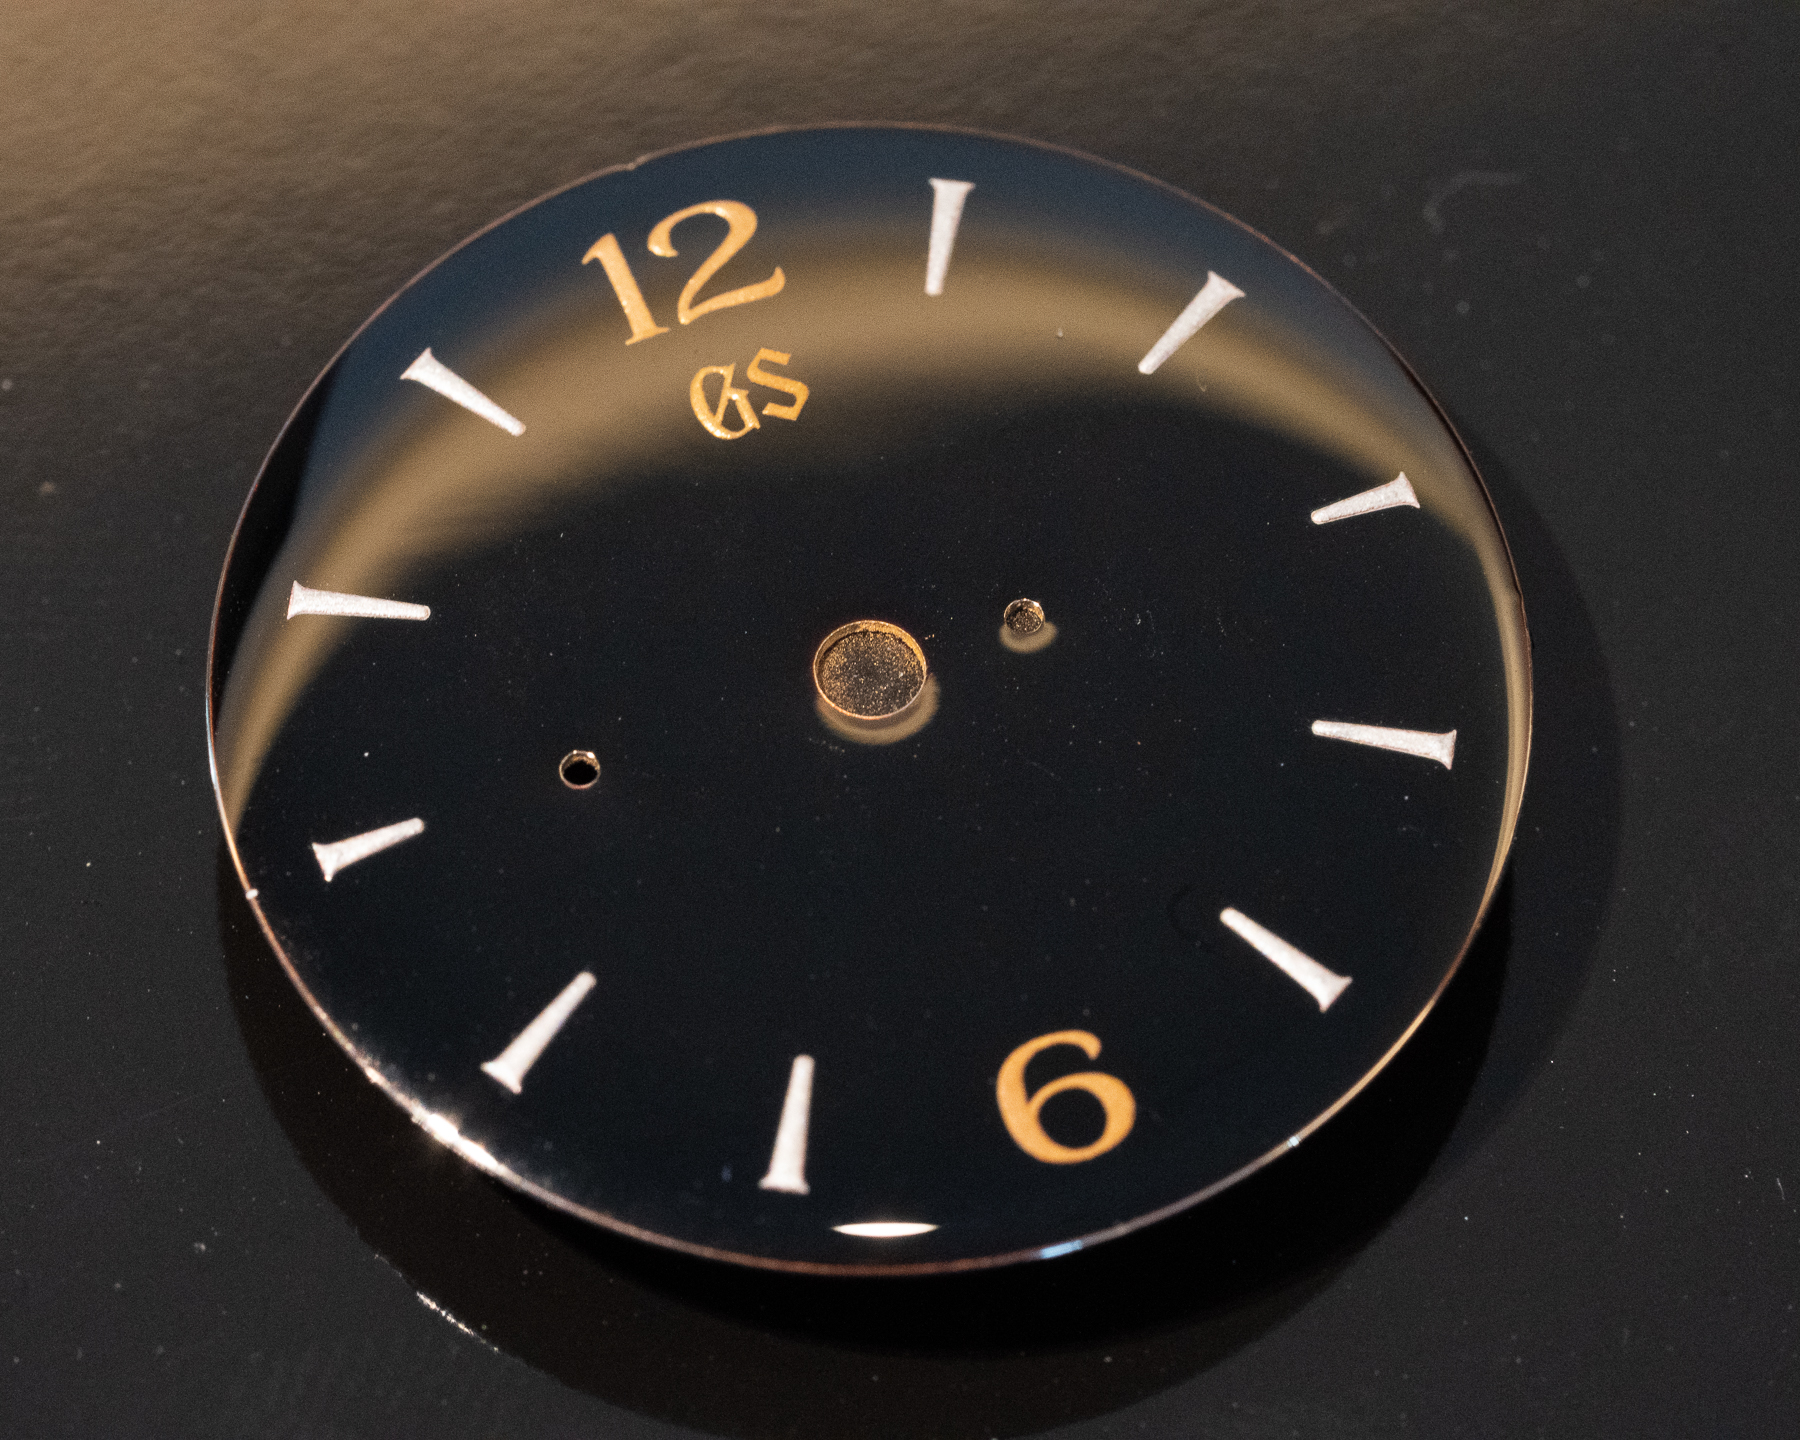 Dial with polished G in logo